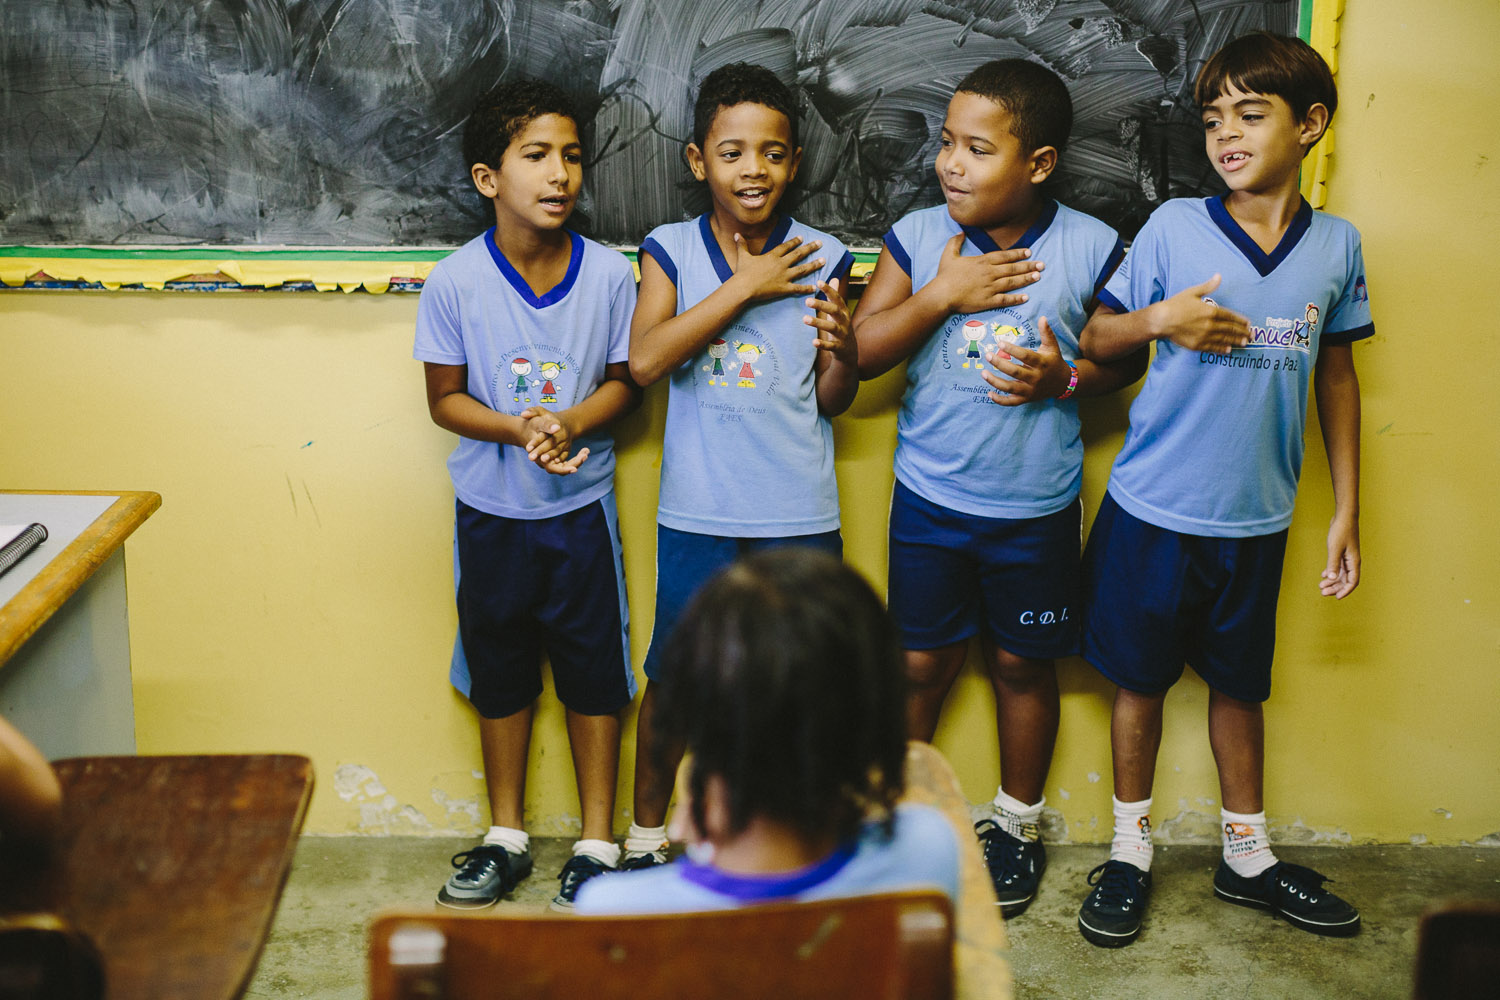 Singing is a part of the classroom activity at the Compassion Center. Emidio during classes at the Compassion Center.